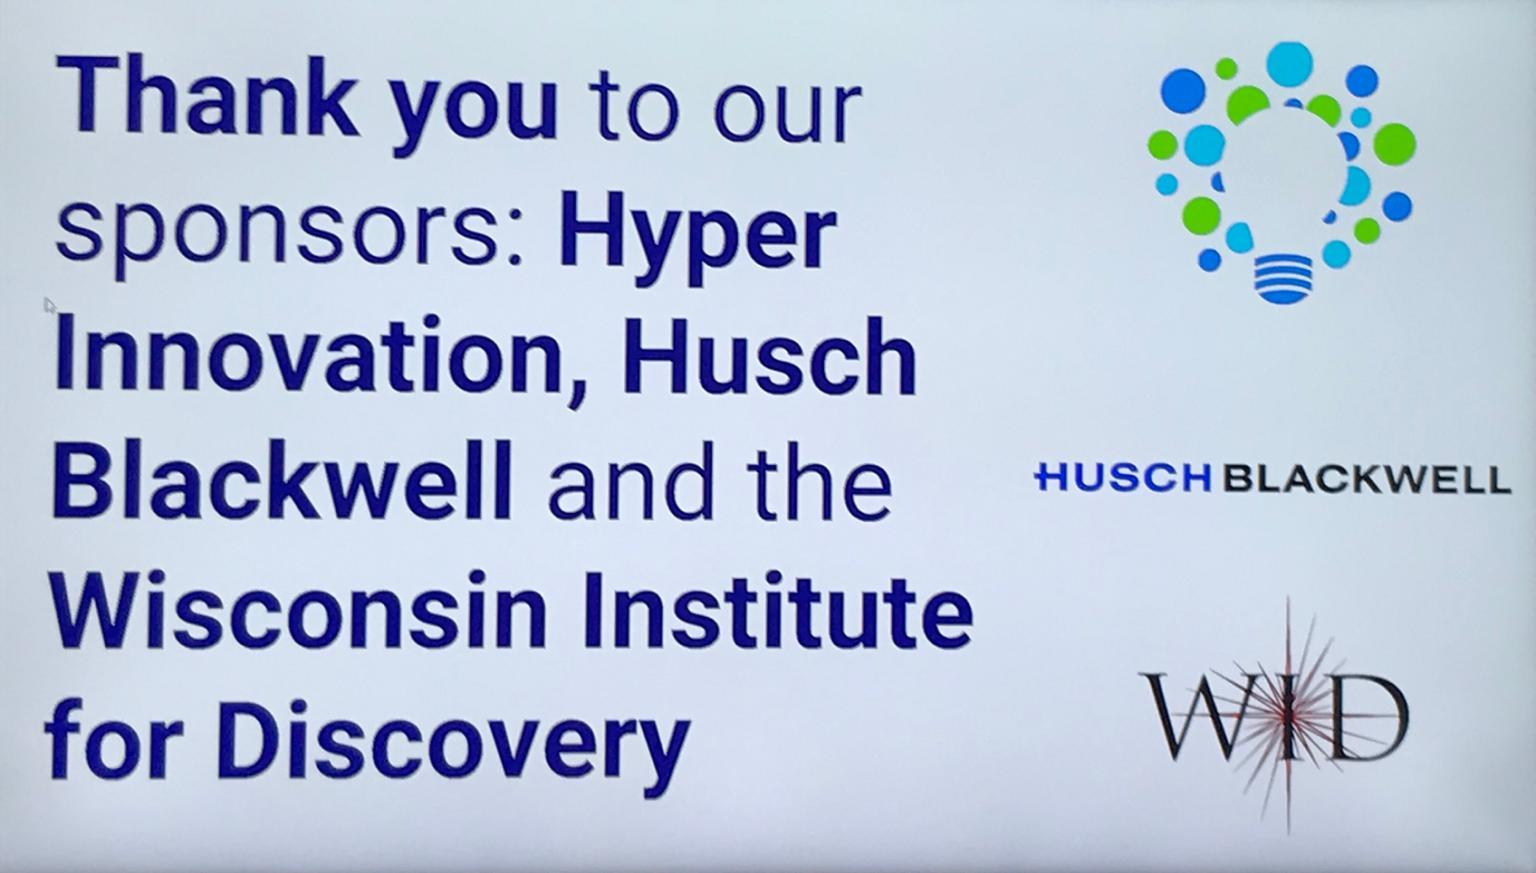 Hyper Innovation Wisconsin Institute for Discovery